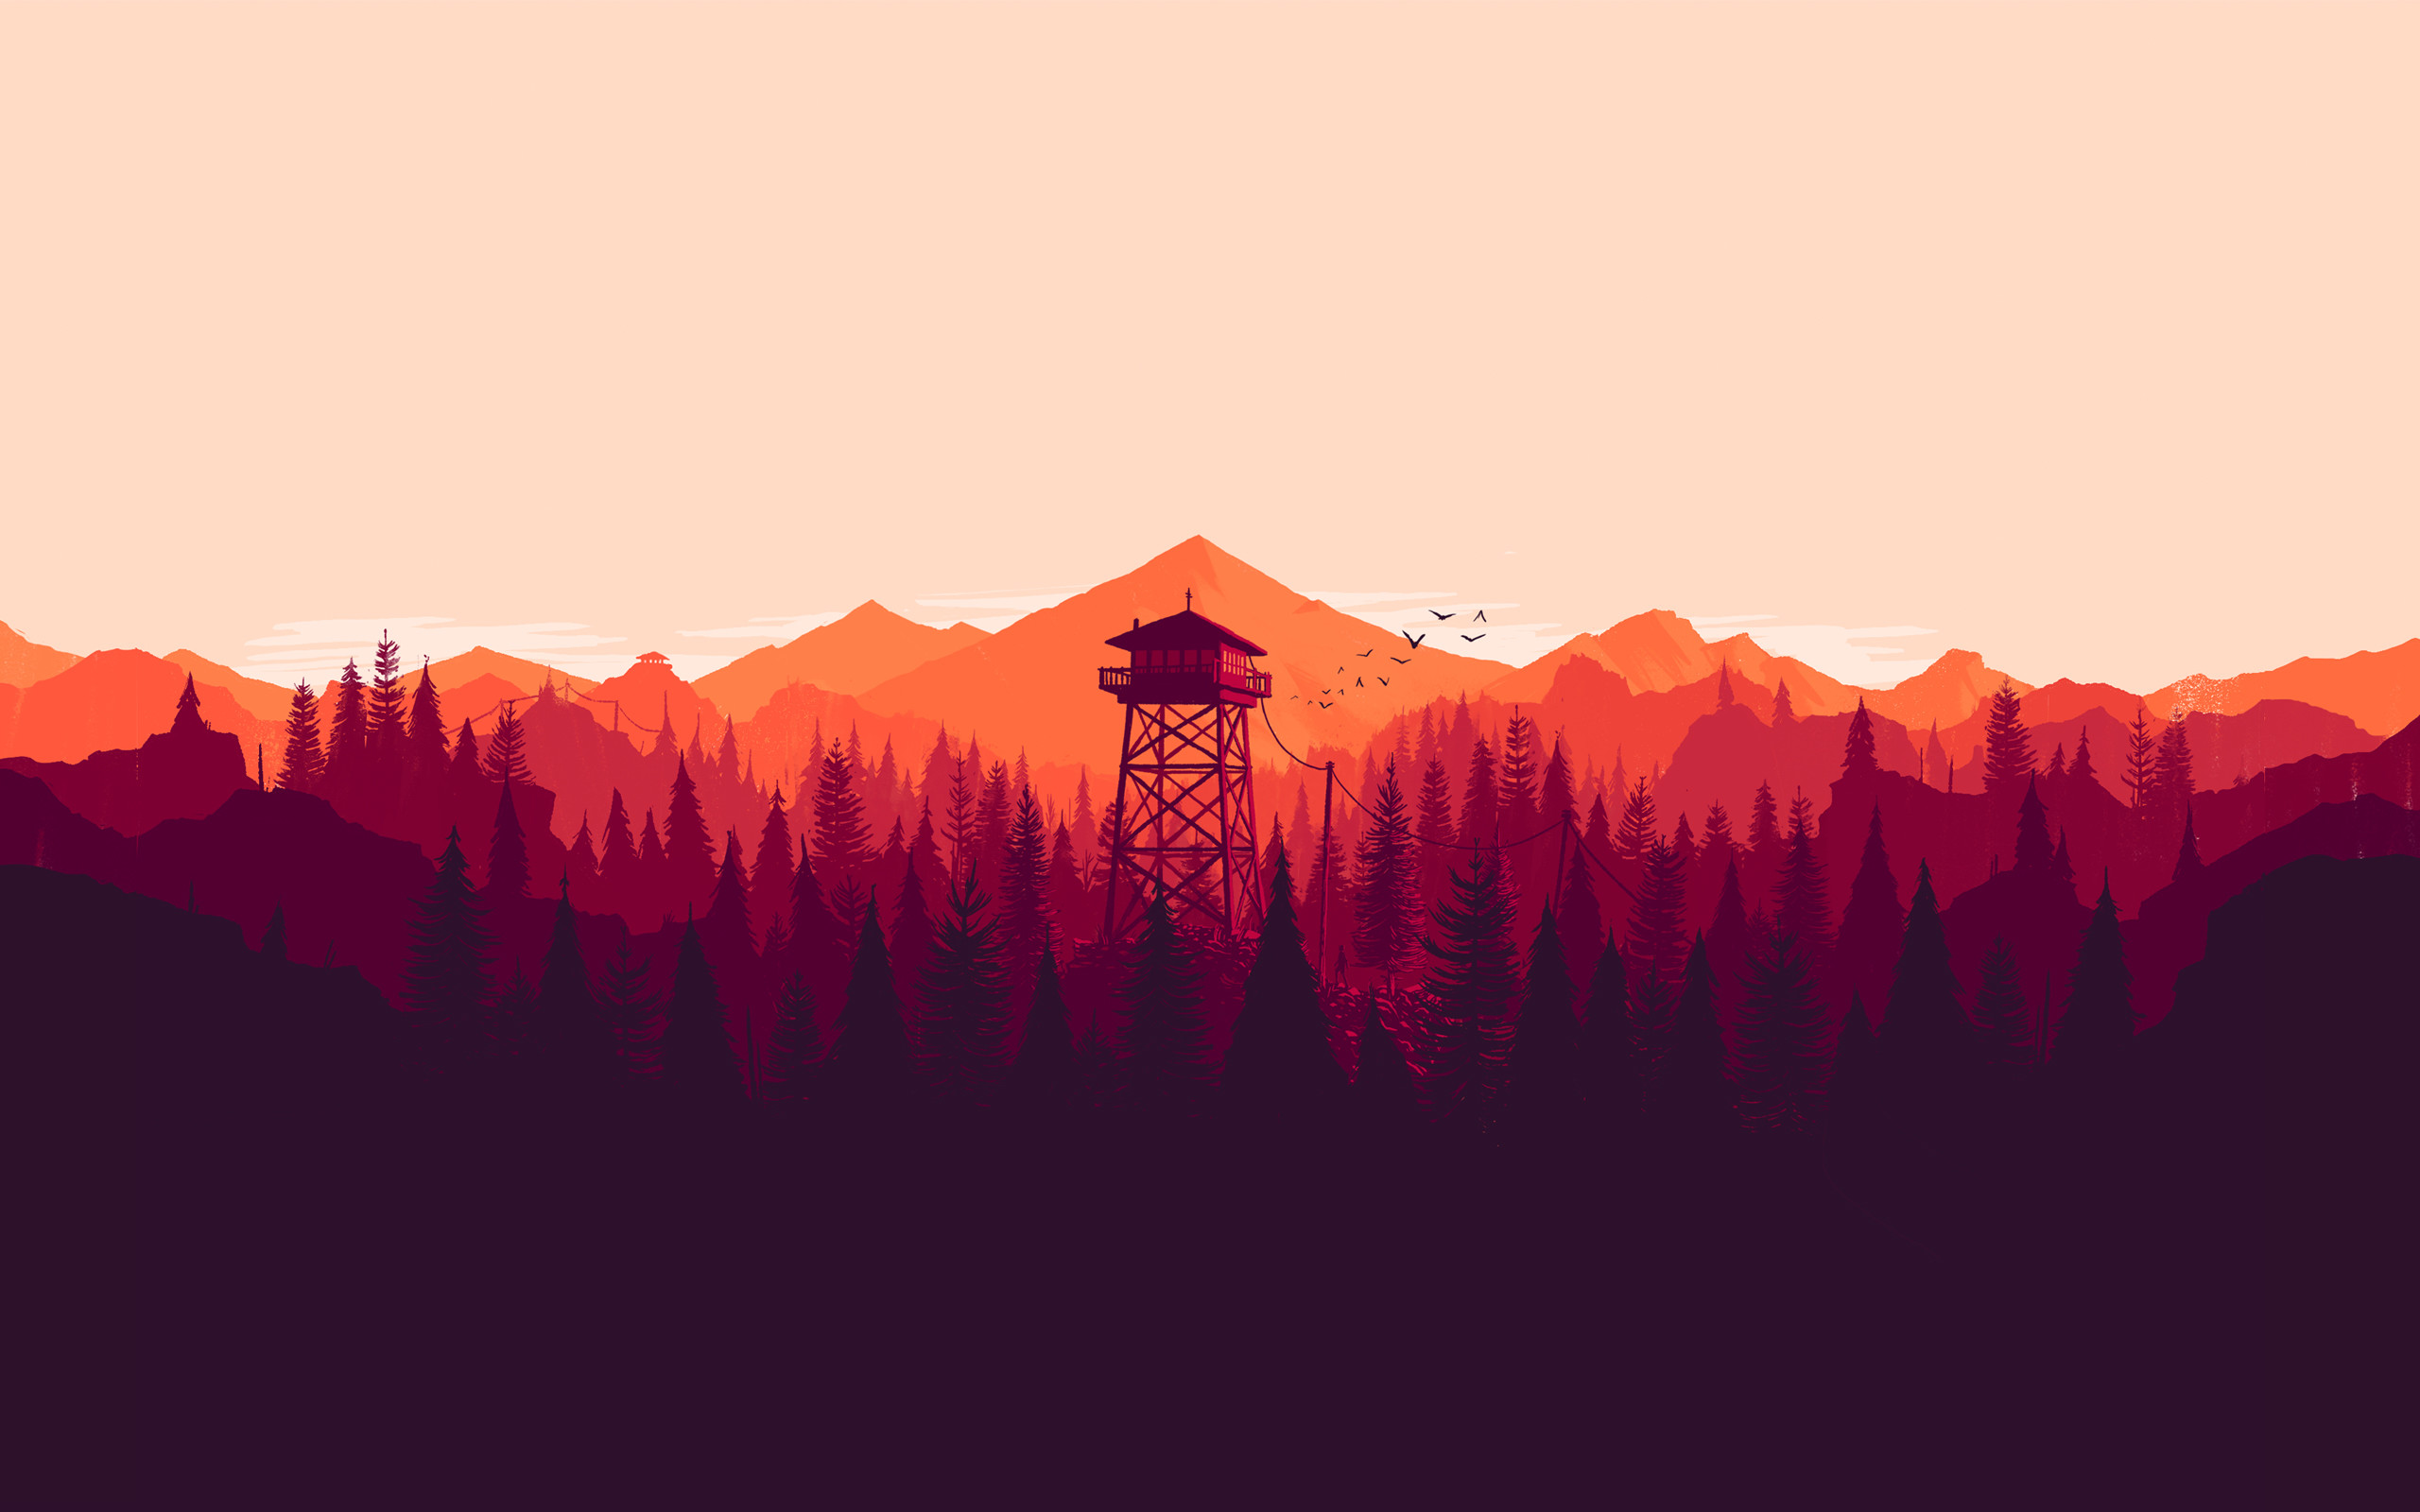 2560x1600 wyjegcy200q7fgrfvbxy.jpg (2560×1600) | Firewatch | Pinterest | Campo santo,  Wallpaper and Game art